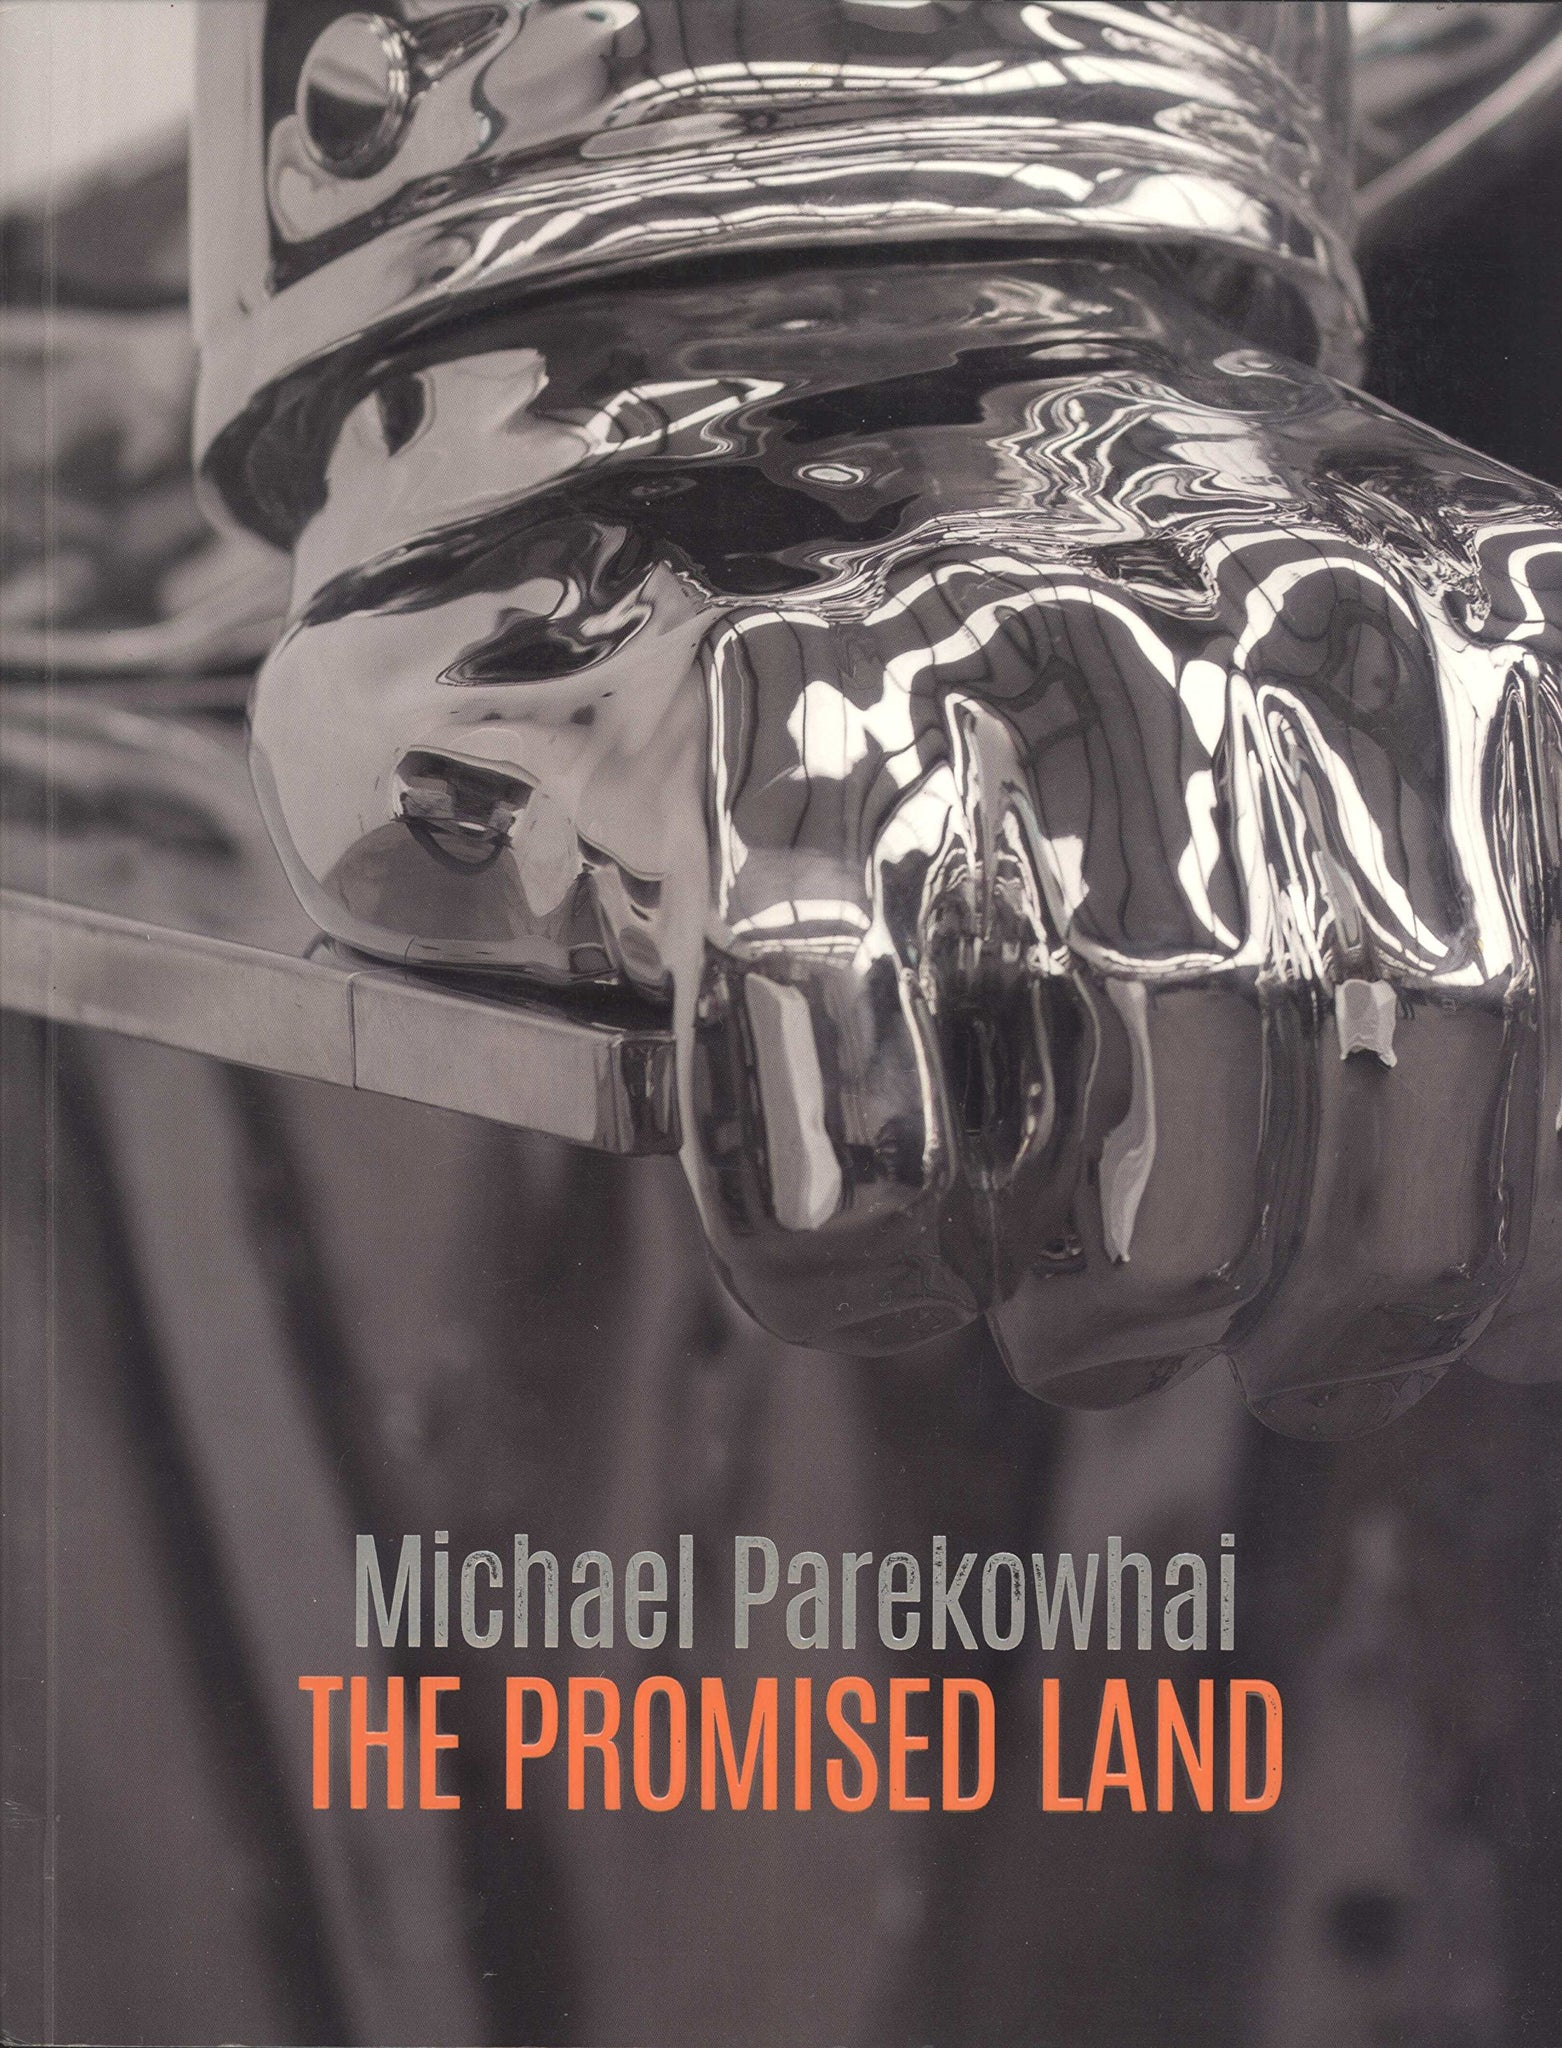 Michael Parekowhai: The Promised Land